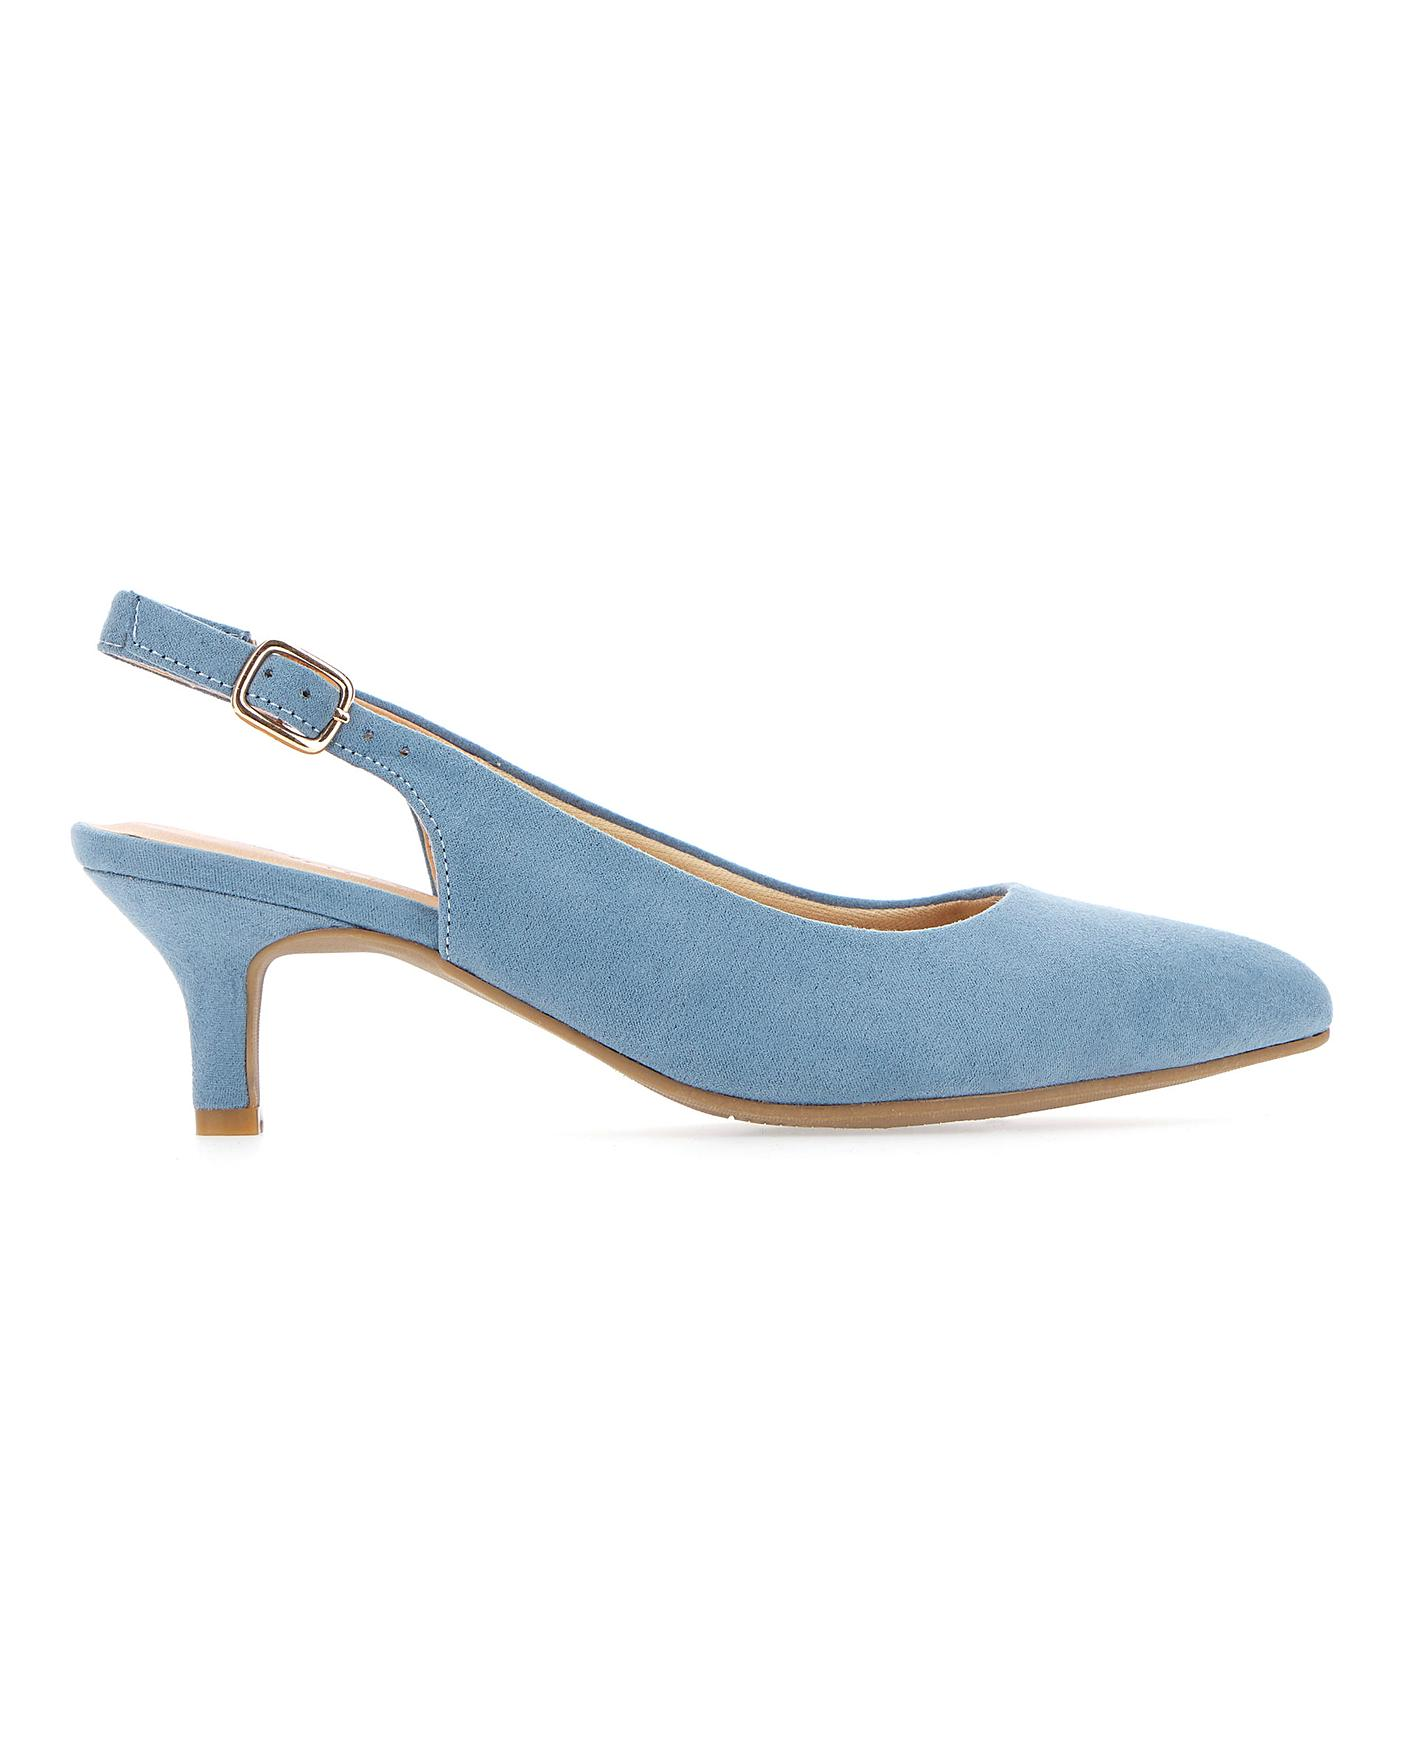 new lower prices purchase cheap first look Flexi Sole Kitten Heel Shoes EEE Fit | Simply Be